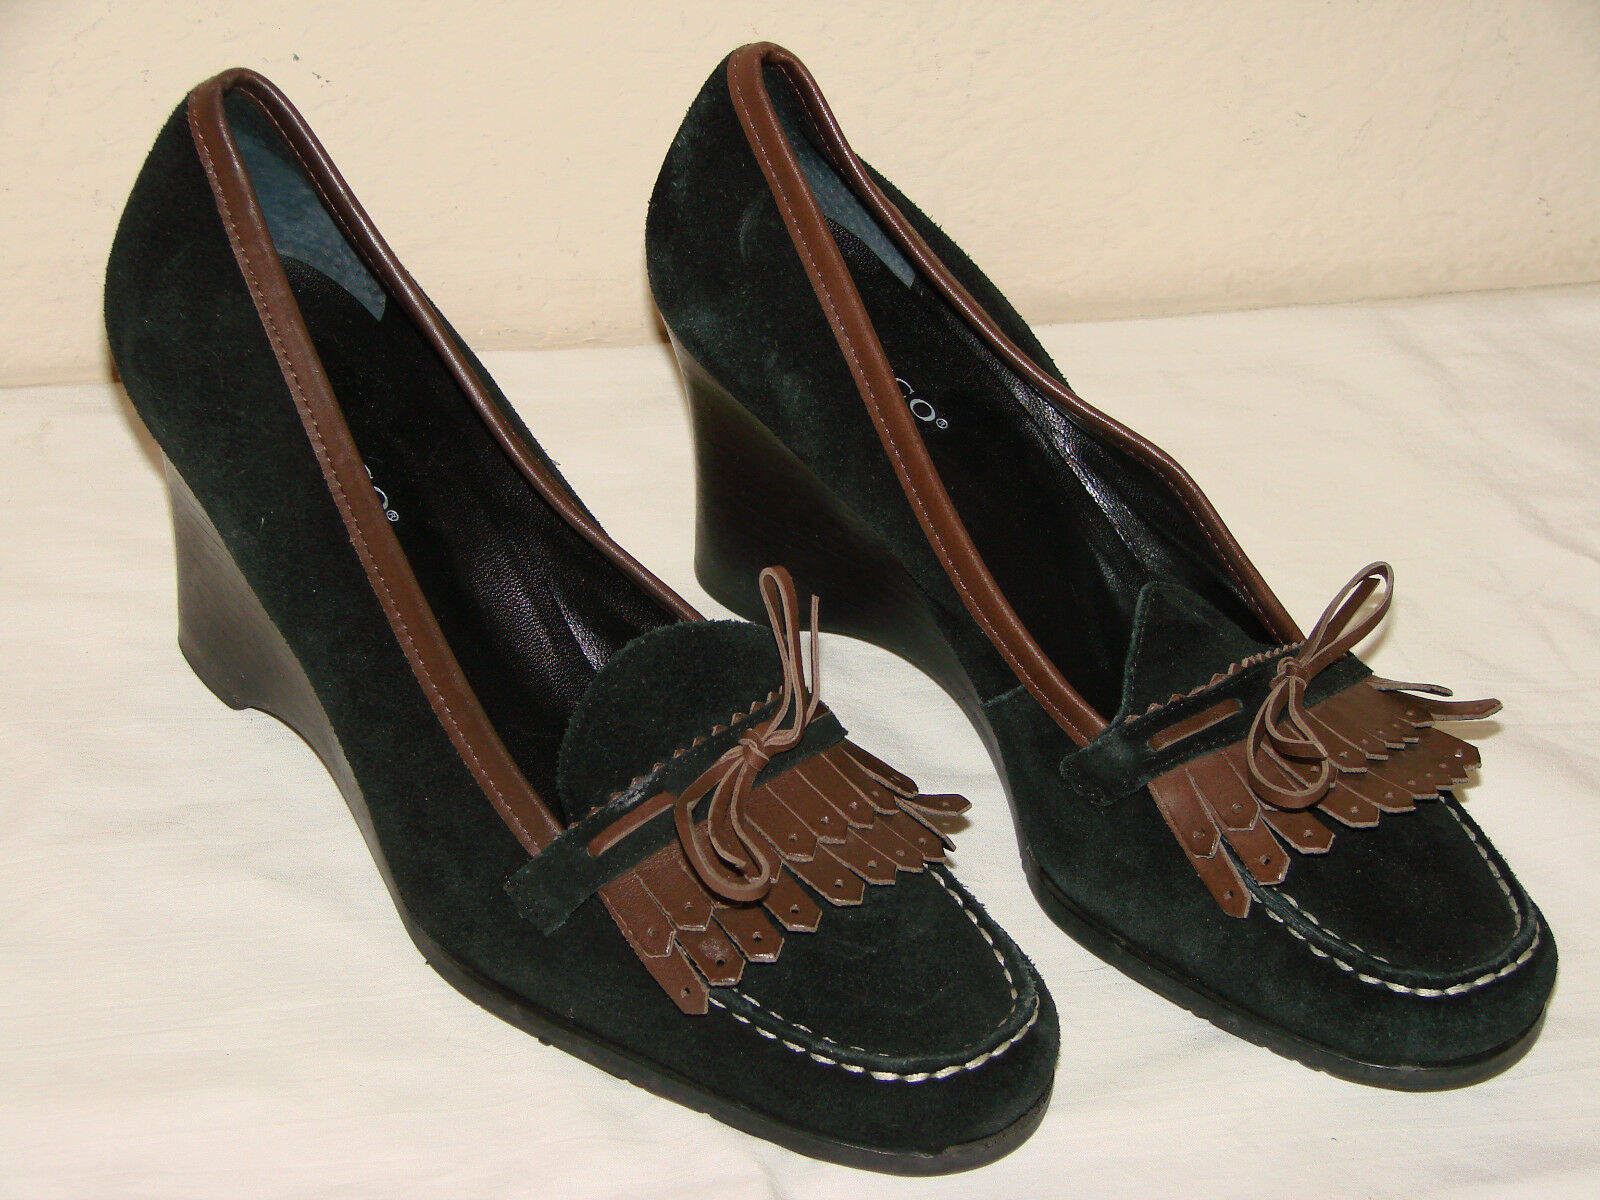 Franco Sarto Womens Black Suede Suede Suede Tassel Loafer Wedge Shoe - Size 8.5M cc6a3a